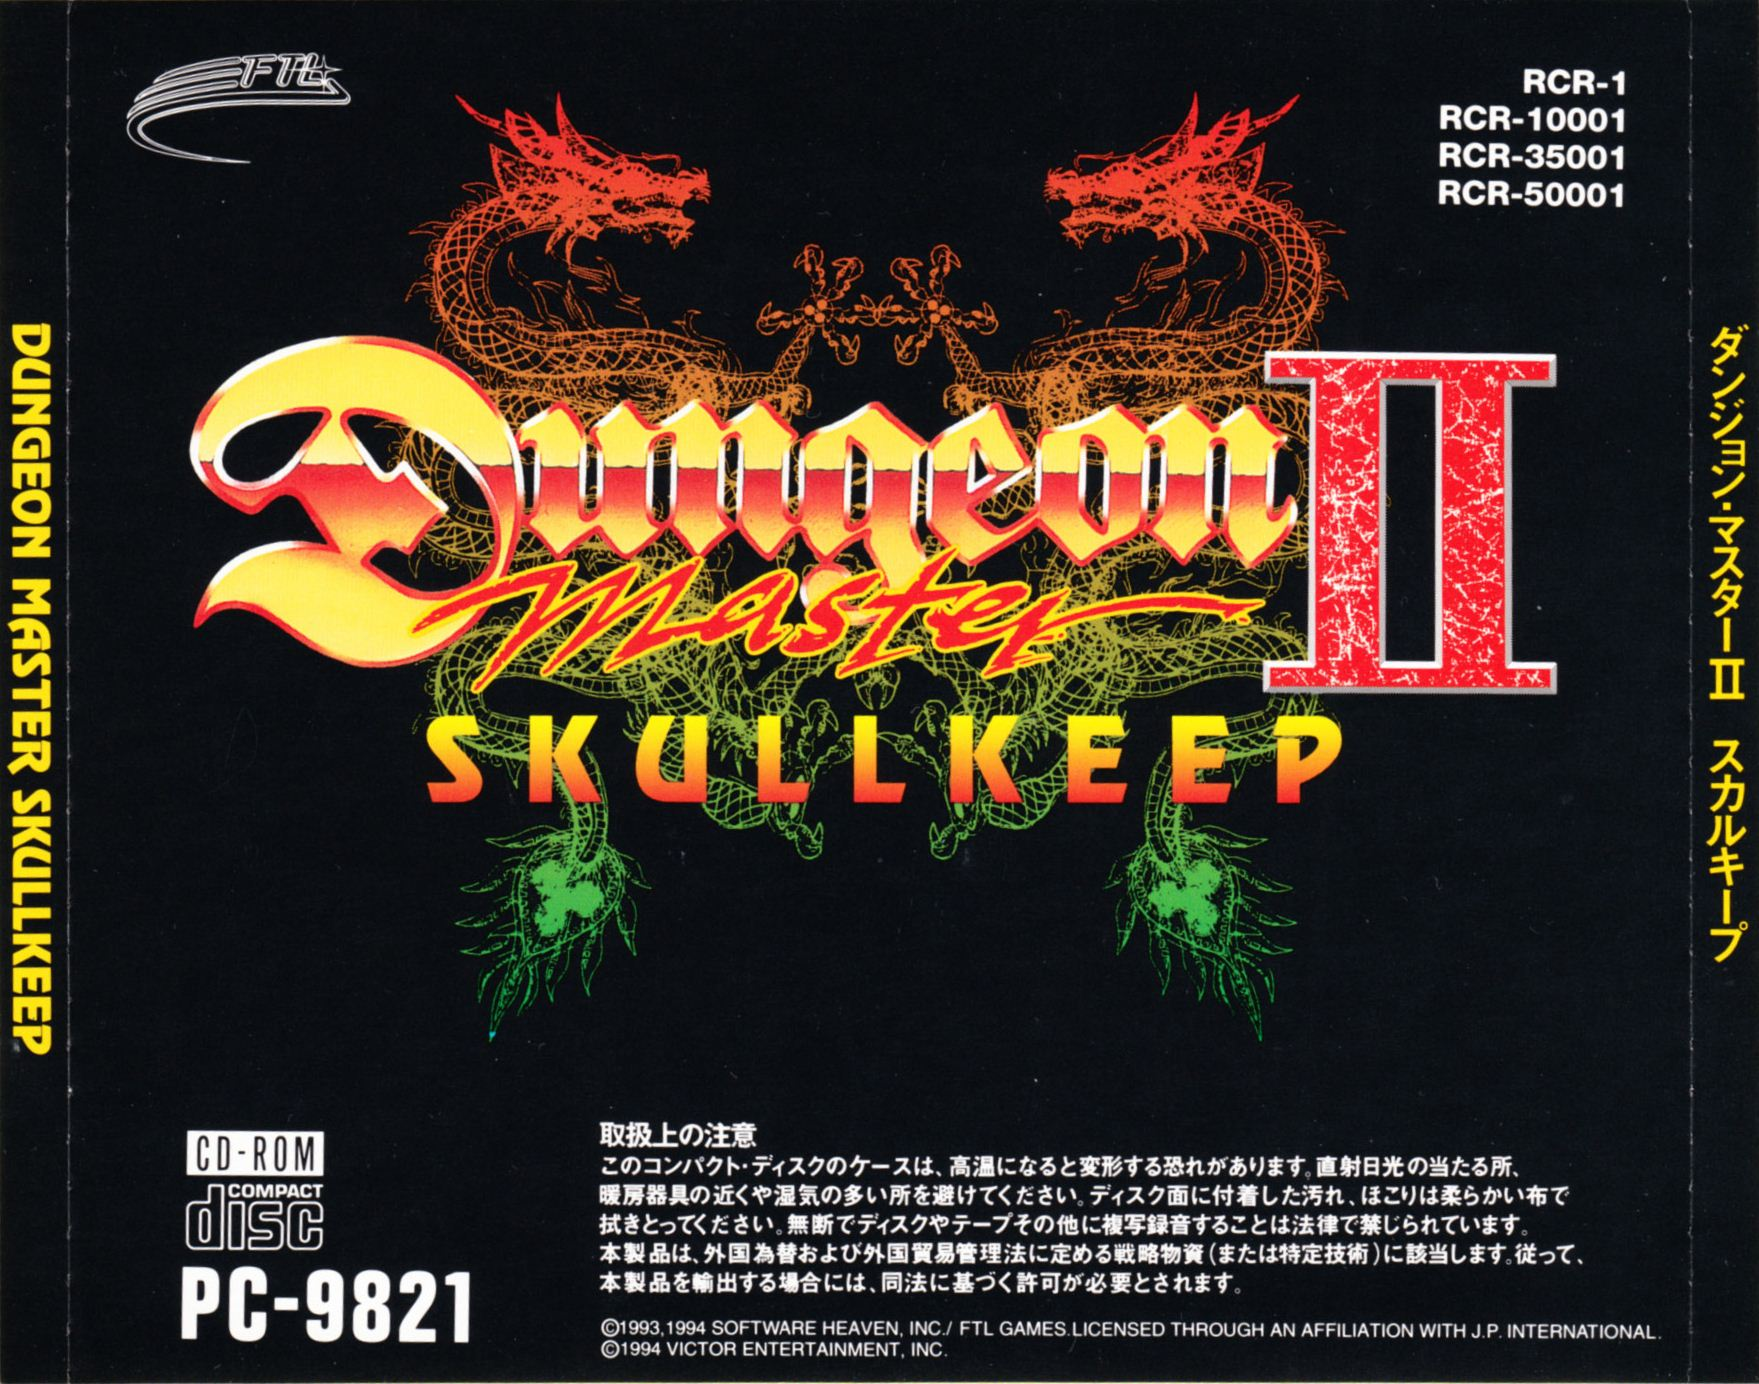 Game - Dungeon Master II - JP - PC-9821 - Back Card - Front - Scan